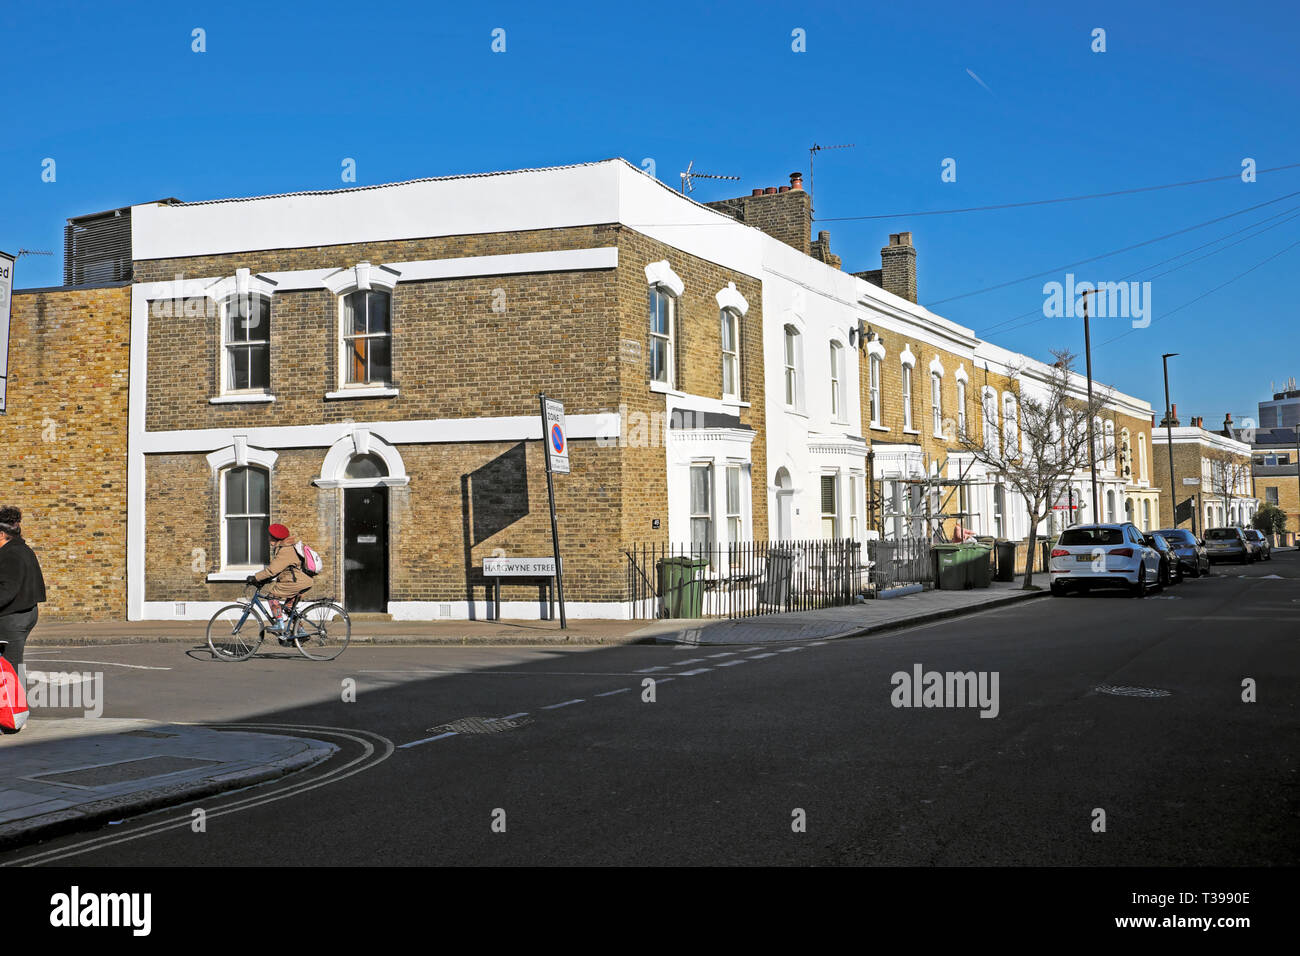 A woman riding a bike on Hargwyne Street and a row of terraced housing on Pulross Road in Brixton, South London SW9 England UK  KATHY DEWITT Stock Photo